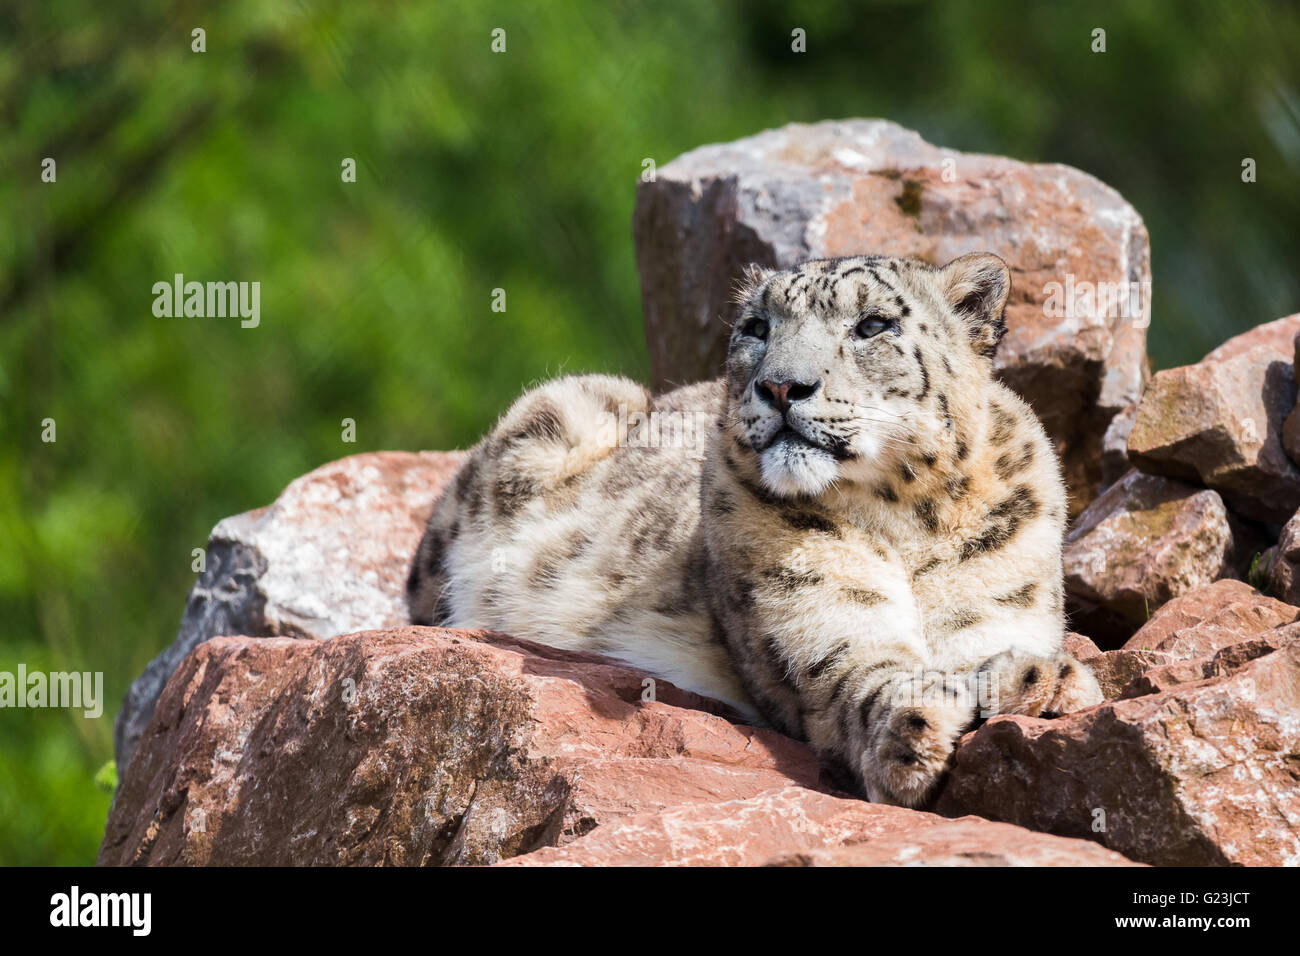 A lone Snow Leopard lying high up on the rocks soaking up the spring sunshine at the South Lakes Zoo in Cumbria. - Stock Image